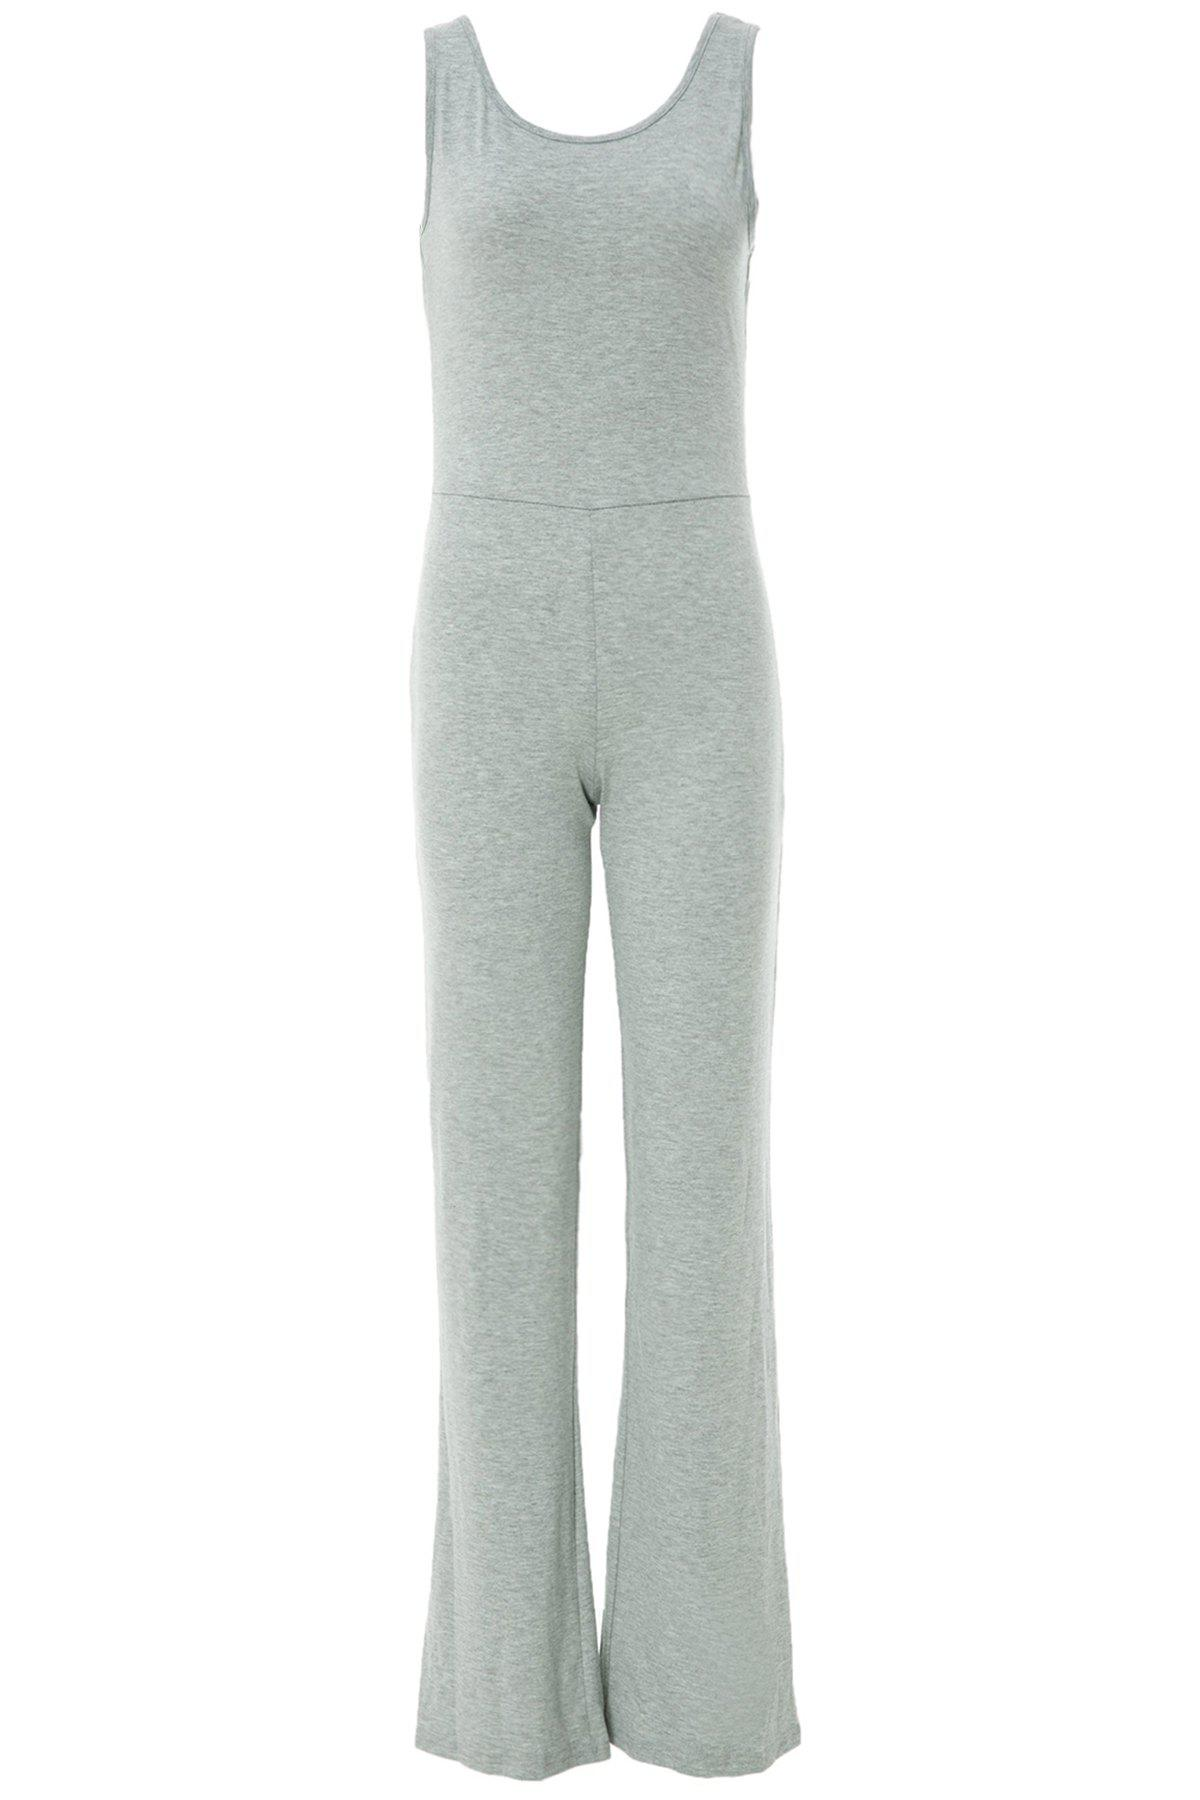 Sexy Scoop Neck Solid Color Backless Sleeveless Women's Jumpsuits - GRAY S